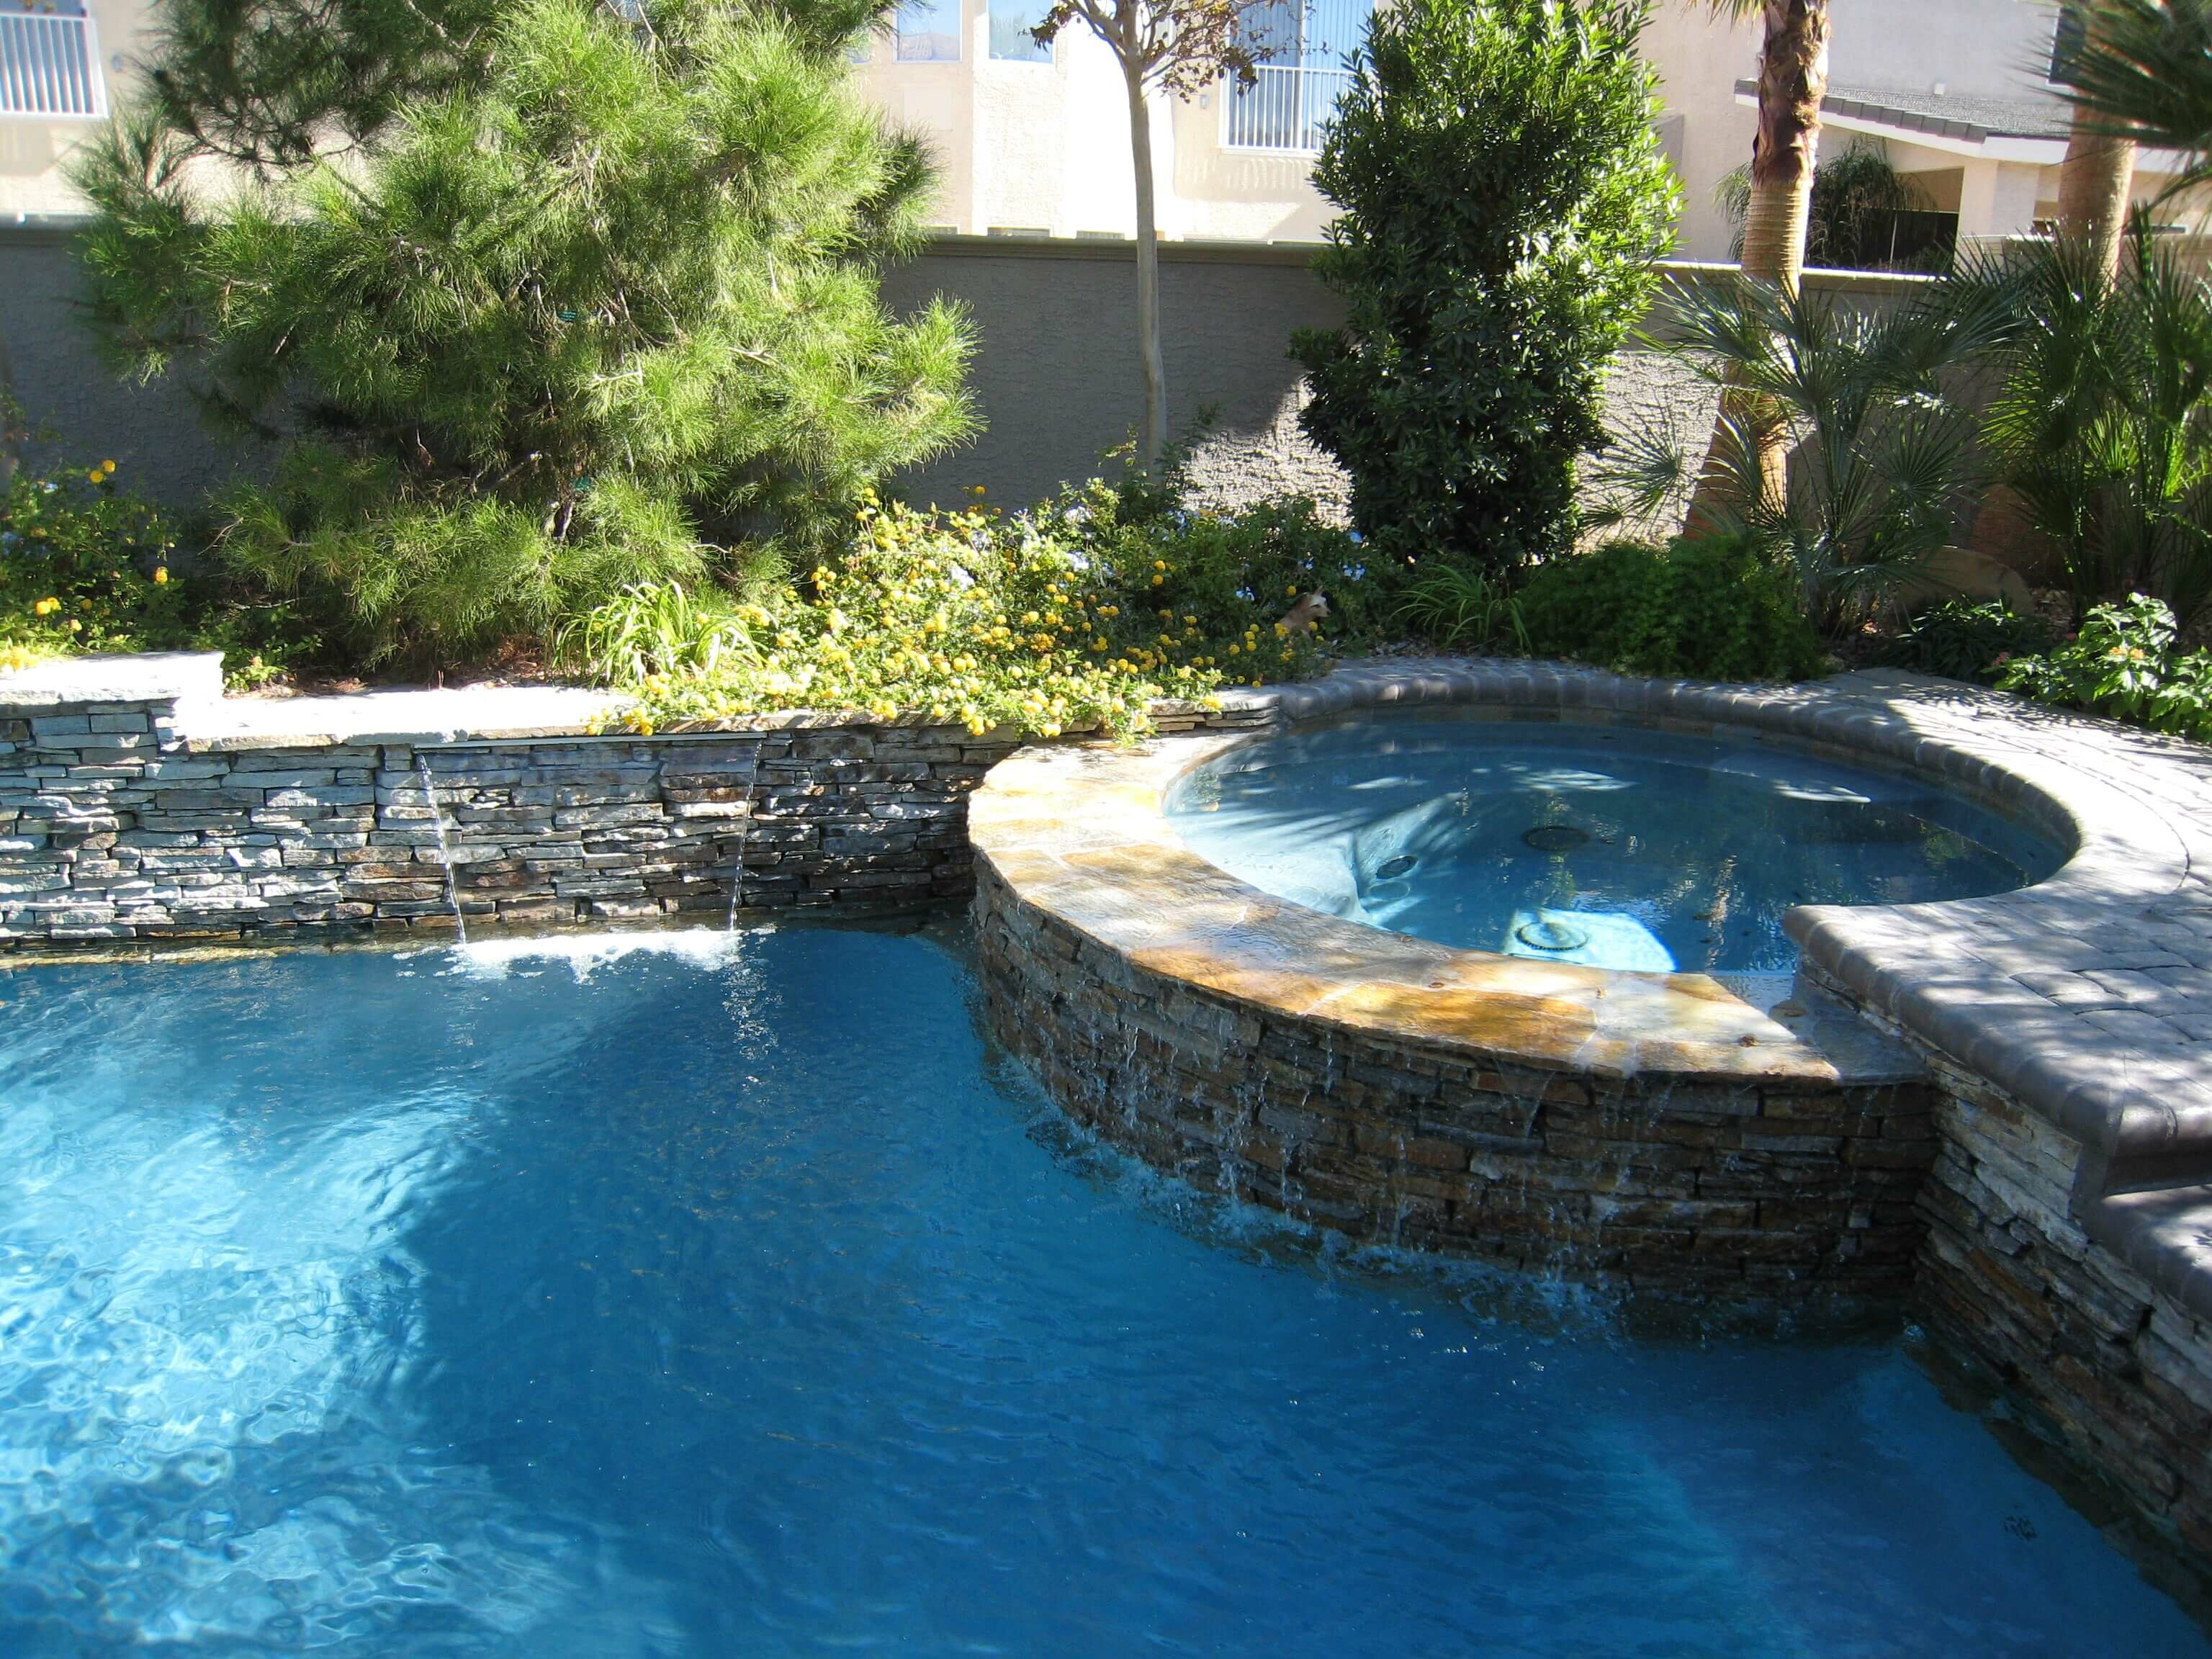 Pool and raised spa